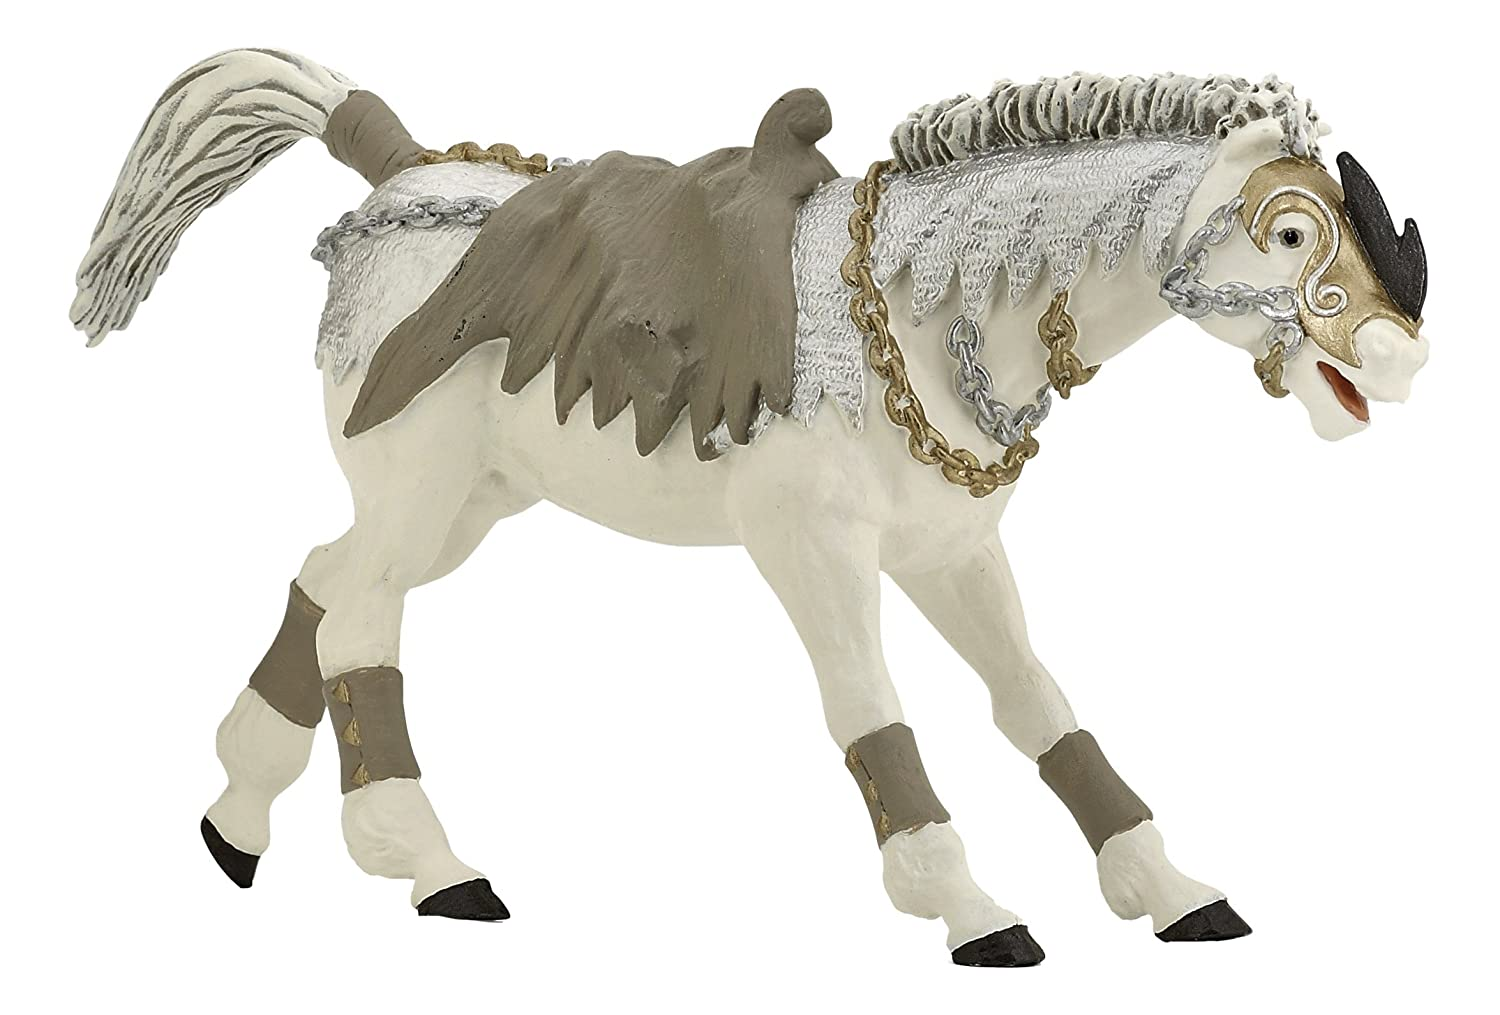 Papo Ghost Horse Figure C /& J Direct GmbH /& Co KG 38992